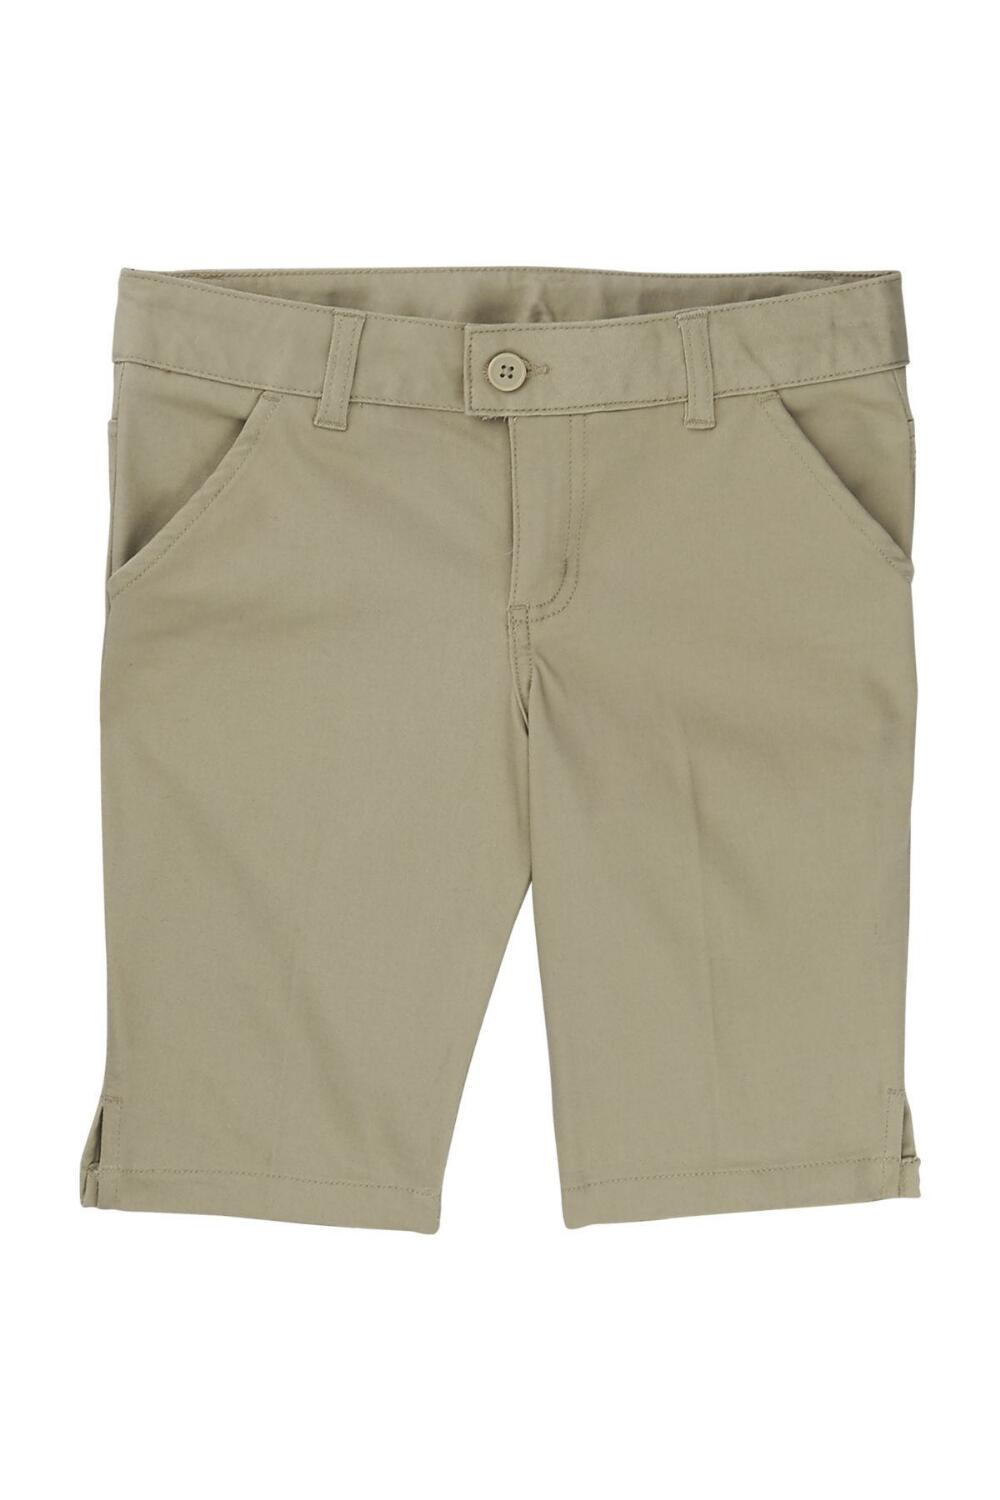 French Toast Girl's Bermuda Short (Color: Khaki Short, Size: 4)